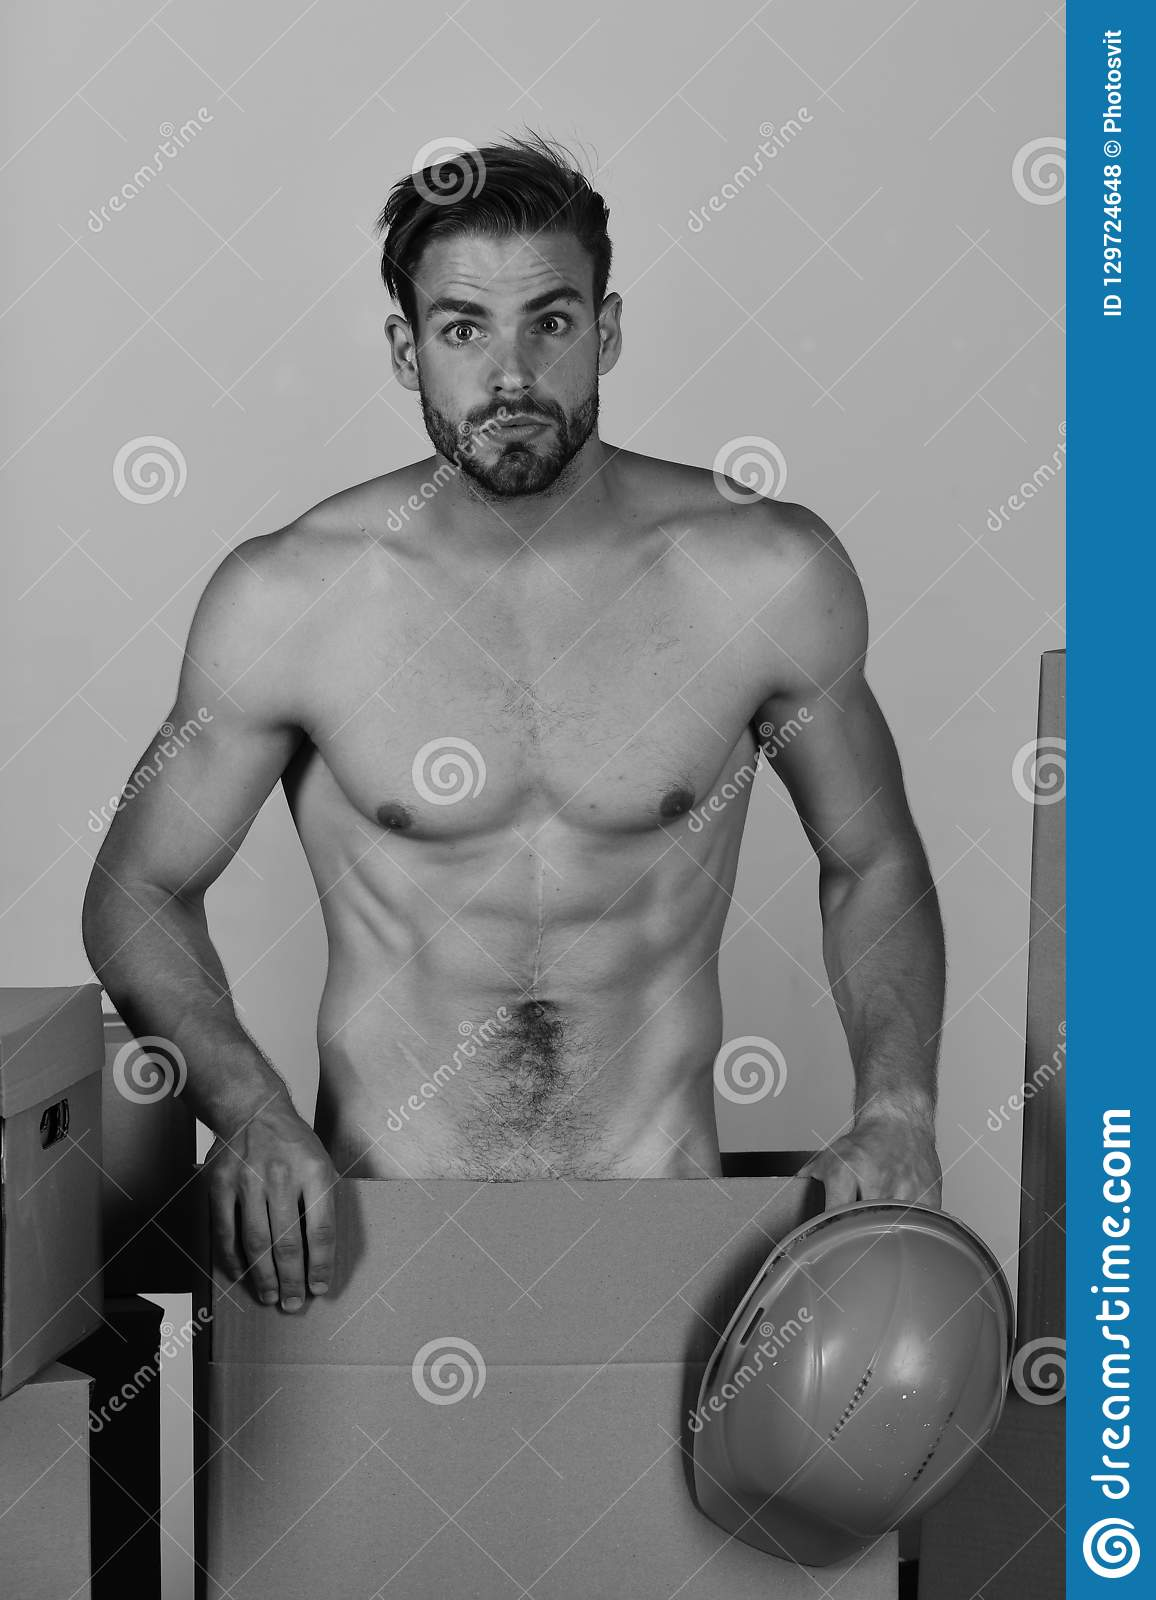 Sexuality and building concept: guy with body holding helmet